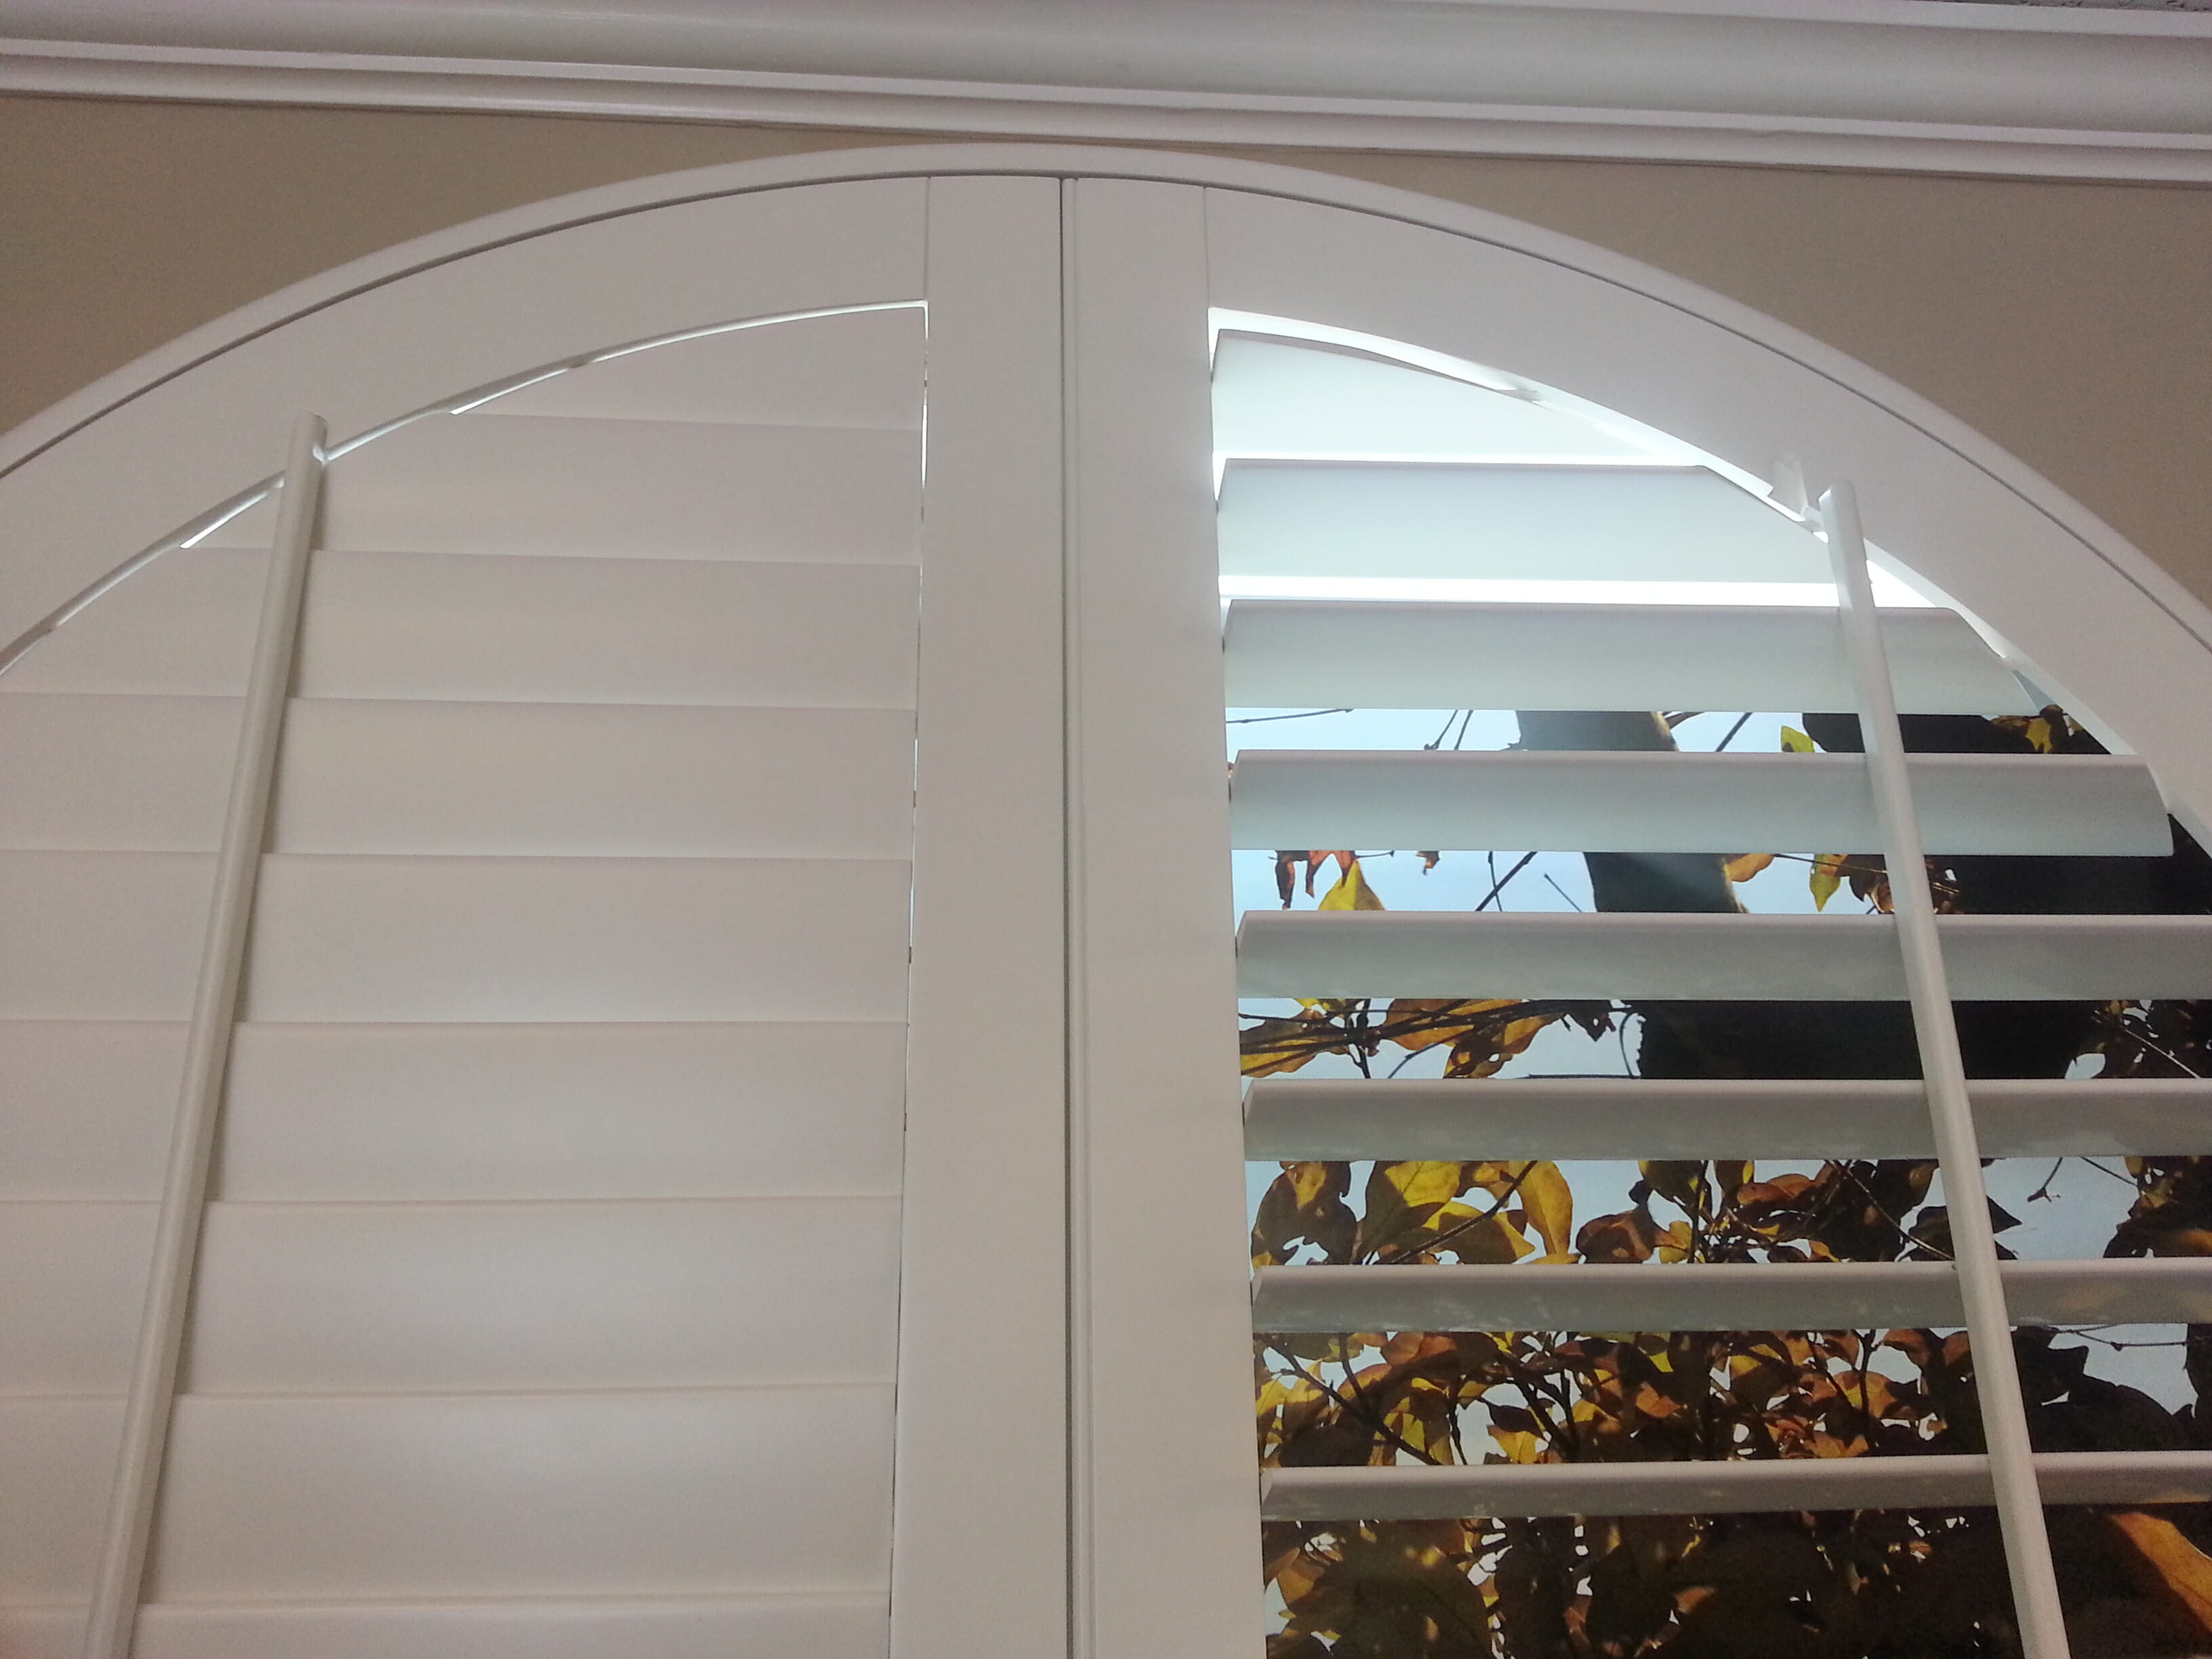 Window treatment for arch window - Fully Framed Arched Wood Shutter With Standard Tilt Bars